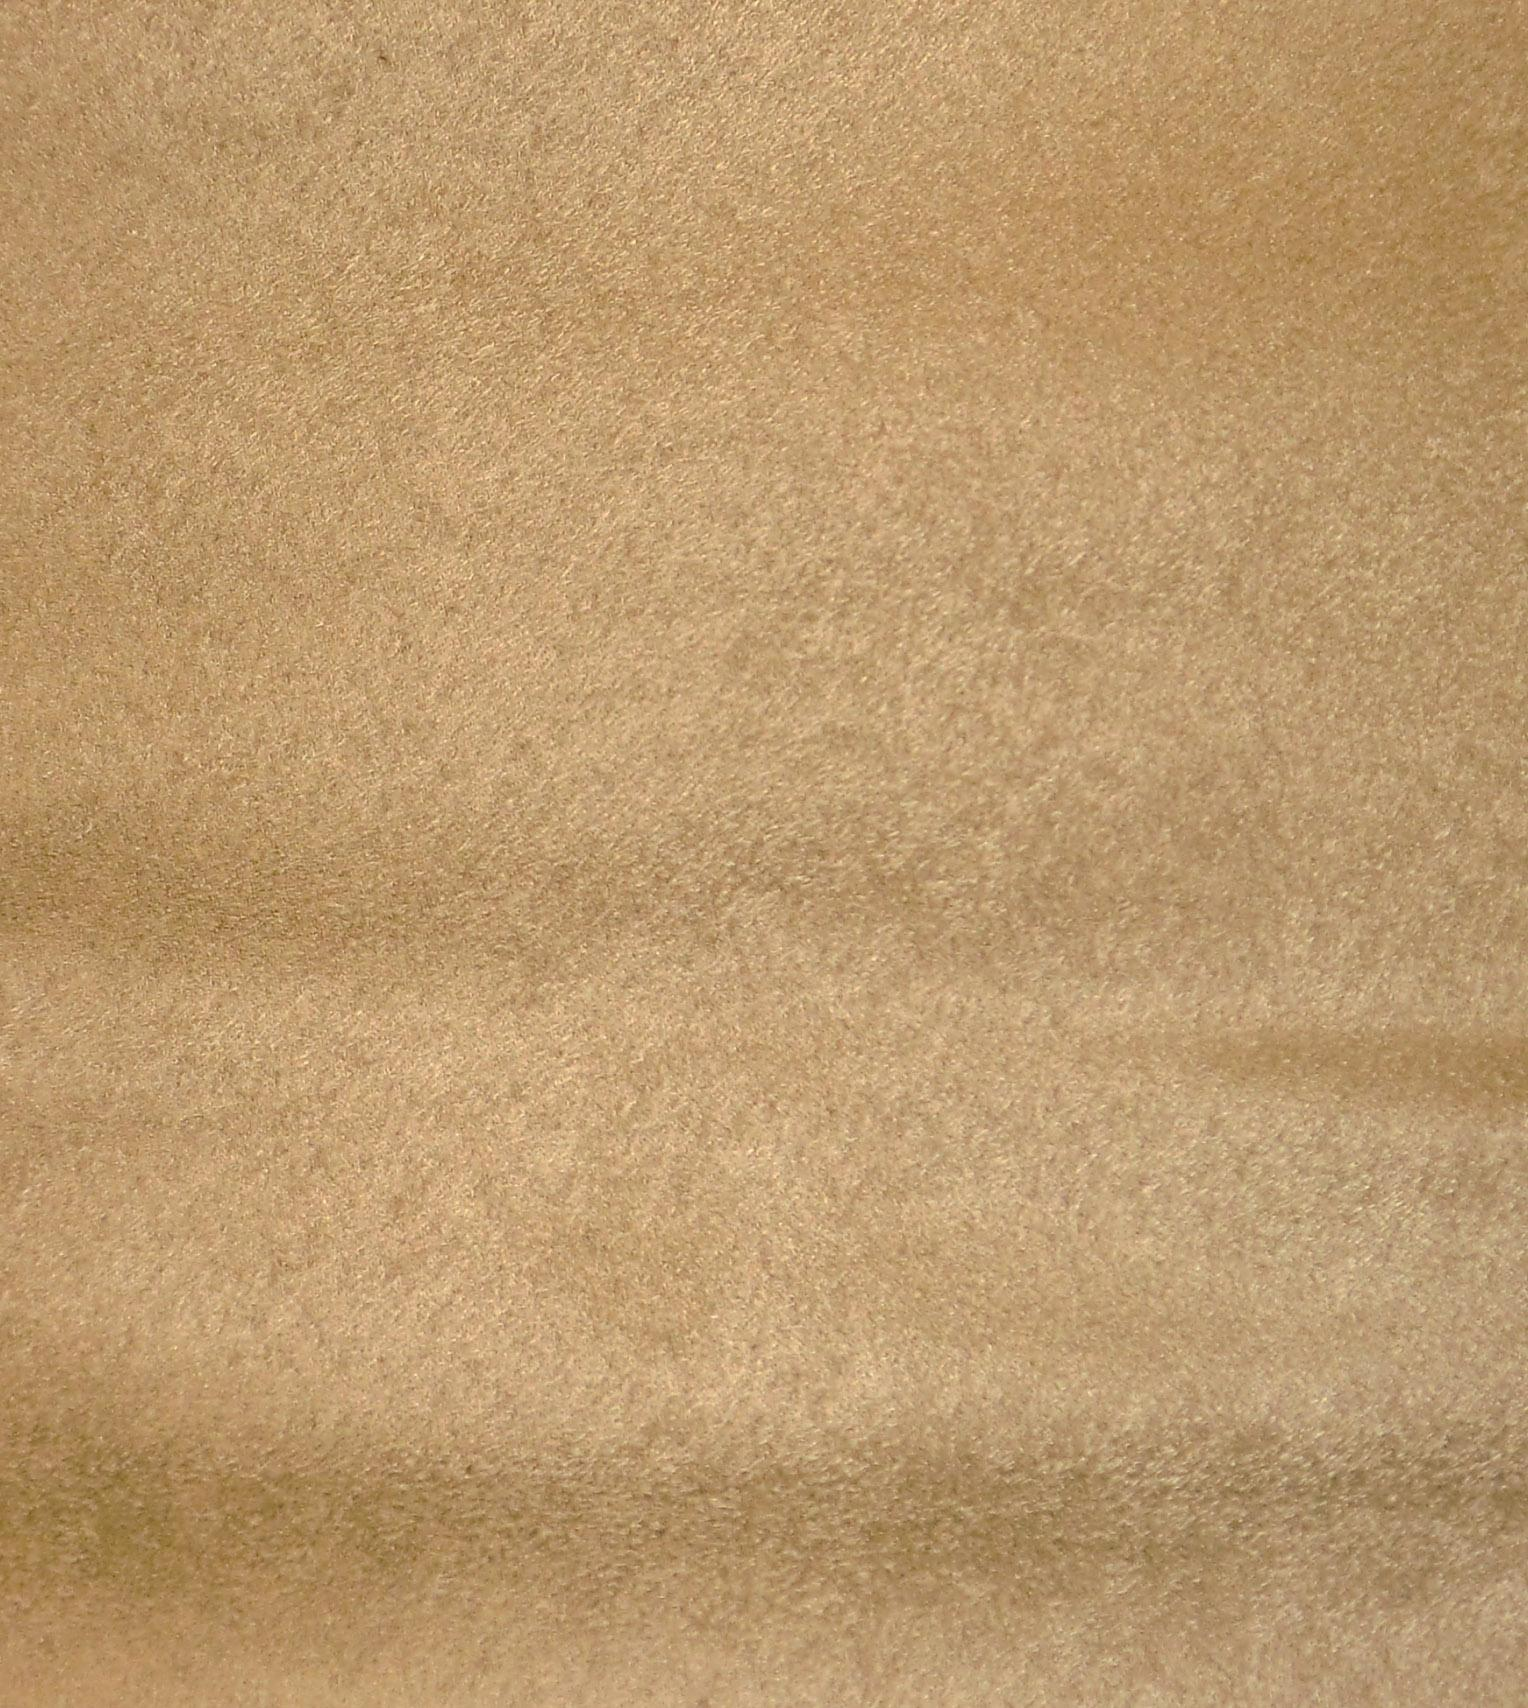 infinity fabrics passion suede camel search results - Camel Color